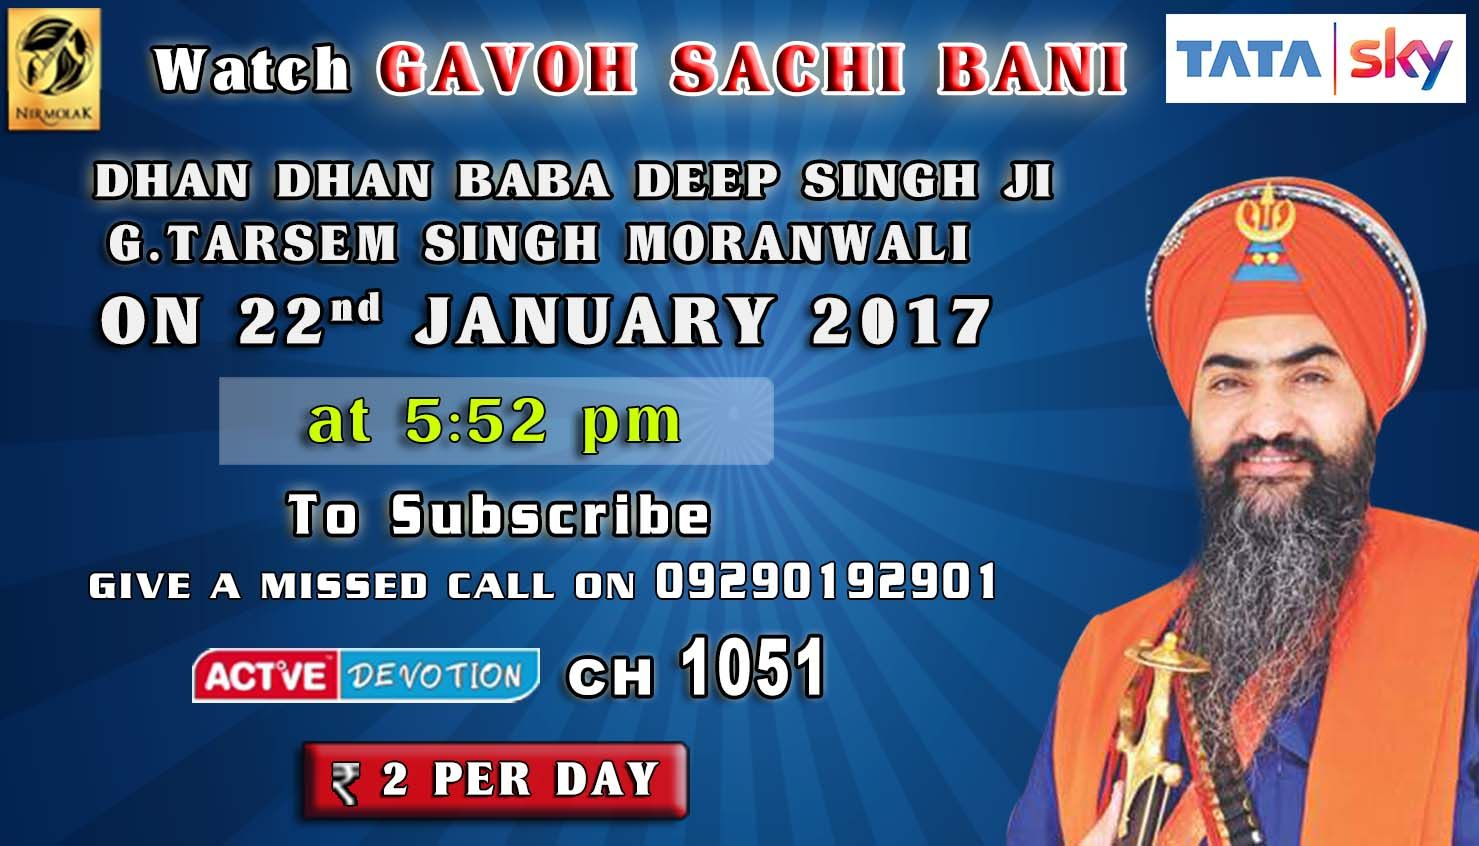 22nd January Schedule of Tata Sky Active Devotion Gurbani Channel..  Watch Channel no 1051 on Tata Sky to listen to Gurbani 24X7.. Give A Missed Call On 09290192901 Facebook - https://www.facebook.com/nirmolakgurbaniofficial/  Twitter - https://twitter.com/GurbaniNirmolak Downlaod The Mobile Application For 24 x 7 free gurbani kirtan - Playstore - https://play.google.com/store/apps/details?id=com.init.nirmolak&hl=en App Store…